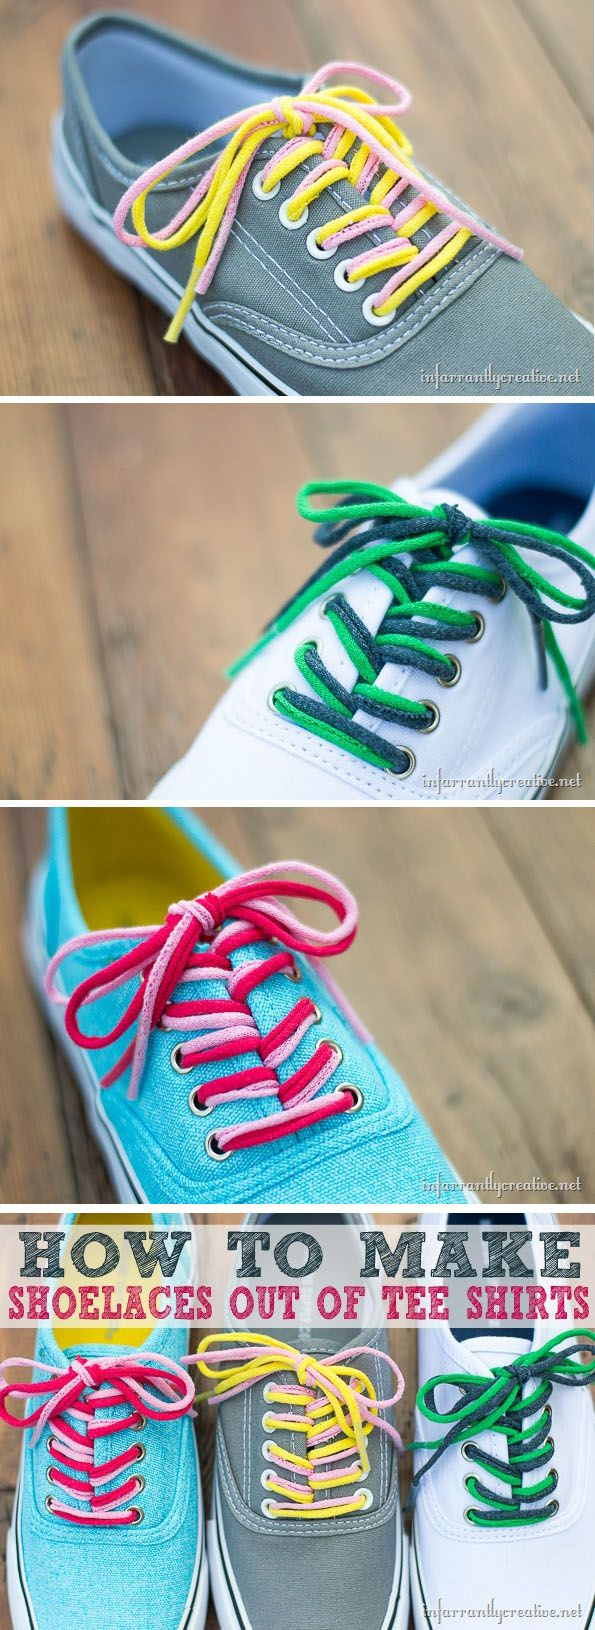 Learn to make shoelaces from t-shirt yarn at TidyMom.net This is especially fun to show off school colors or to coordinate your shoelaces with a certain outfit.